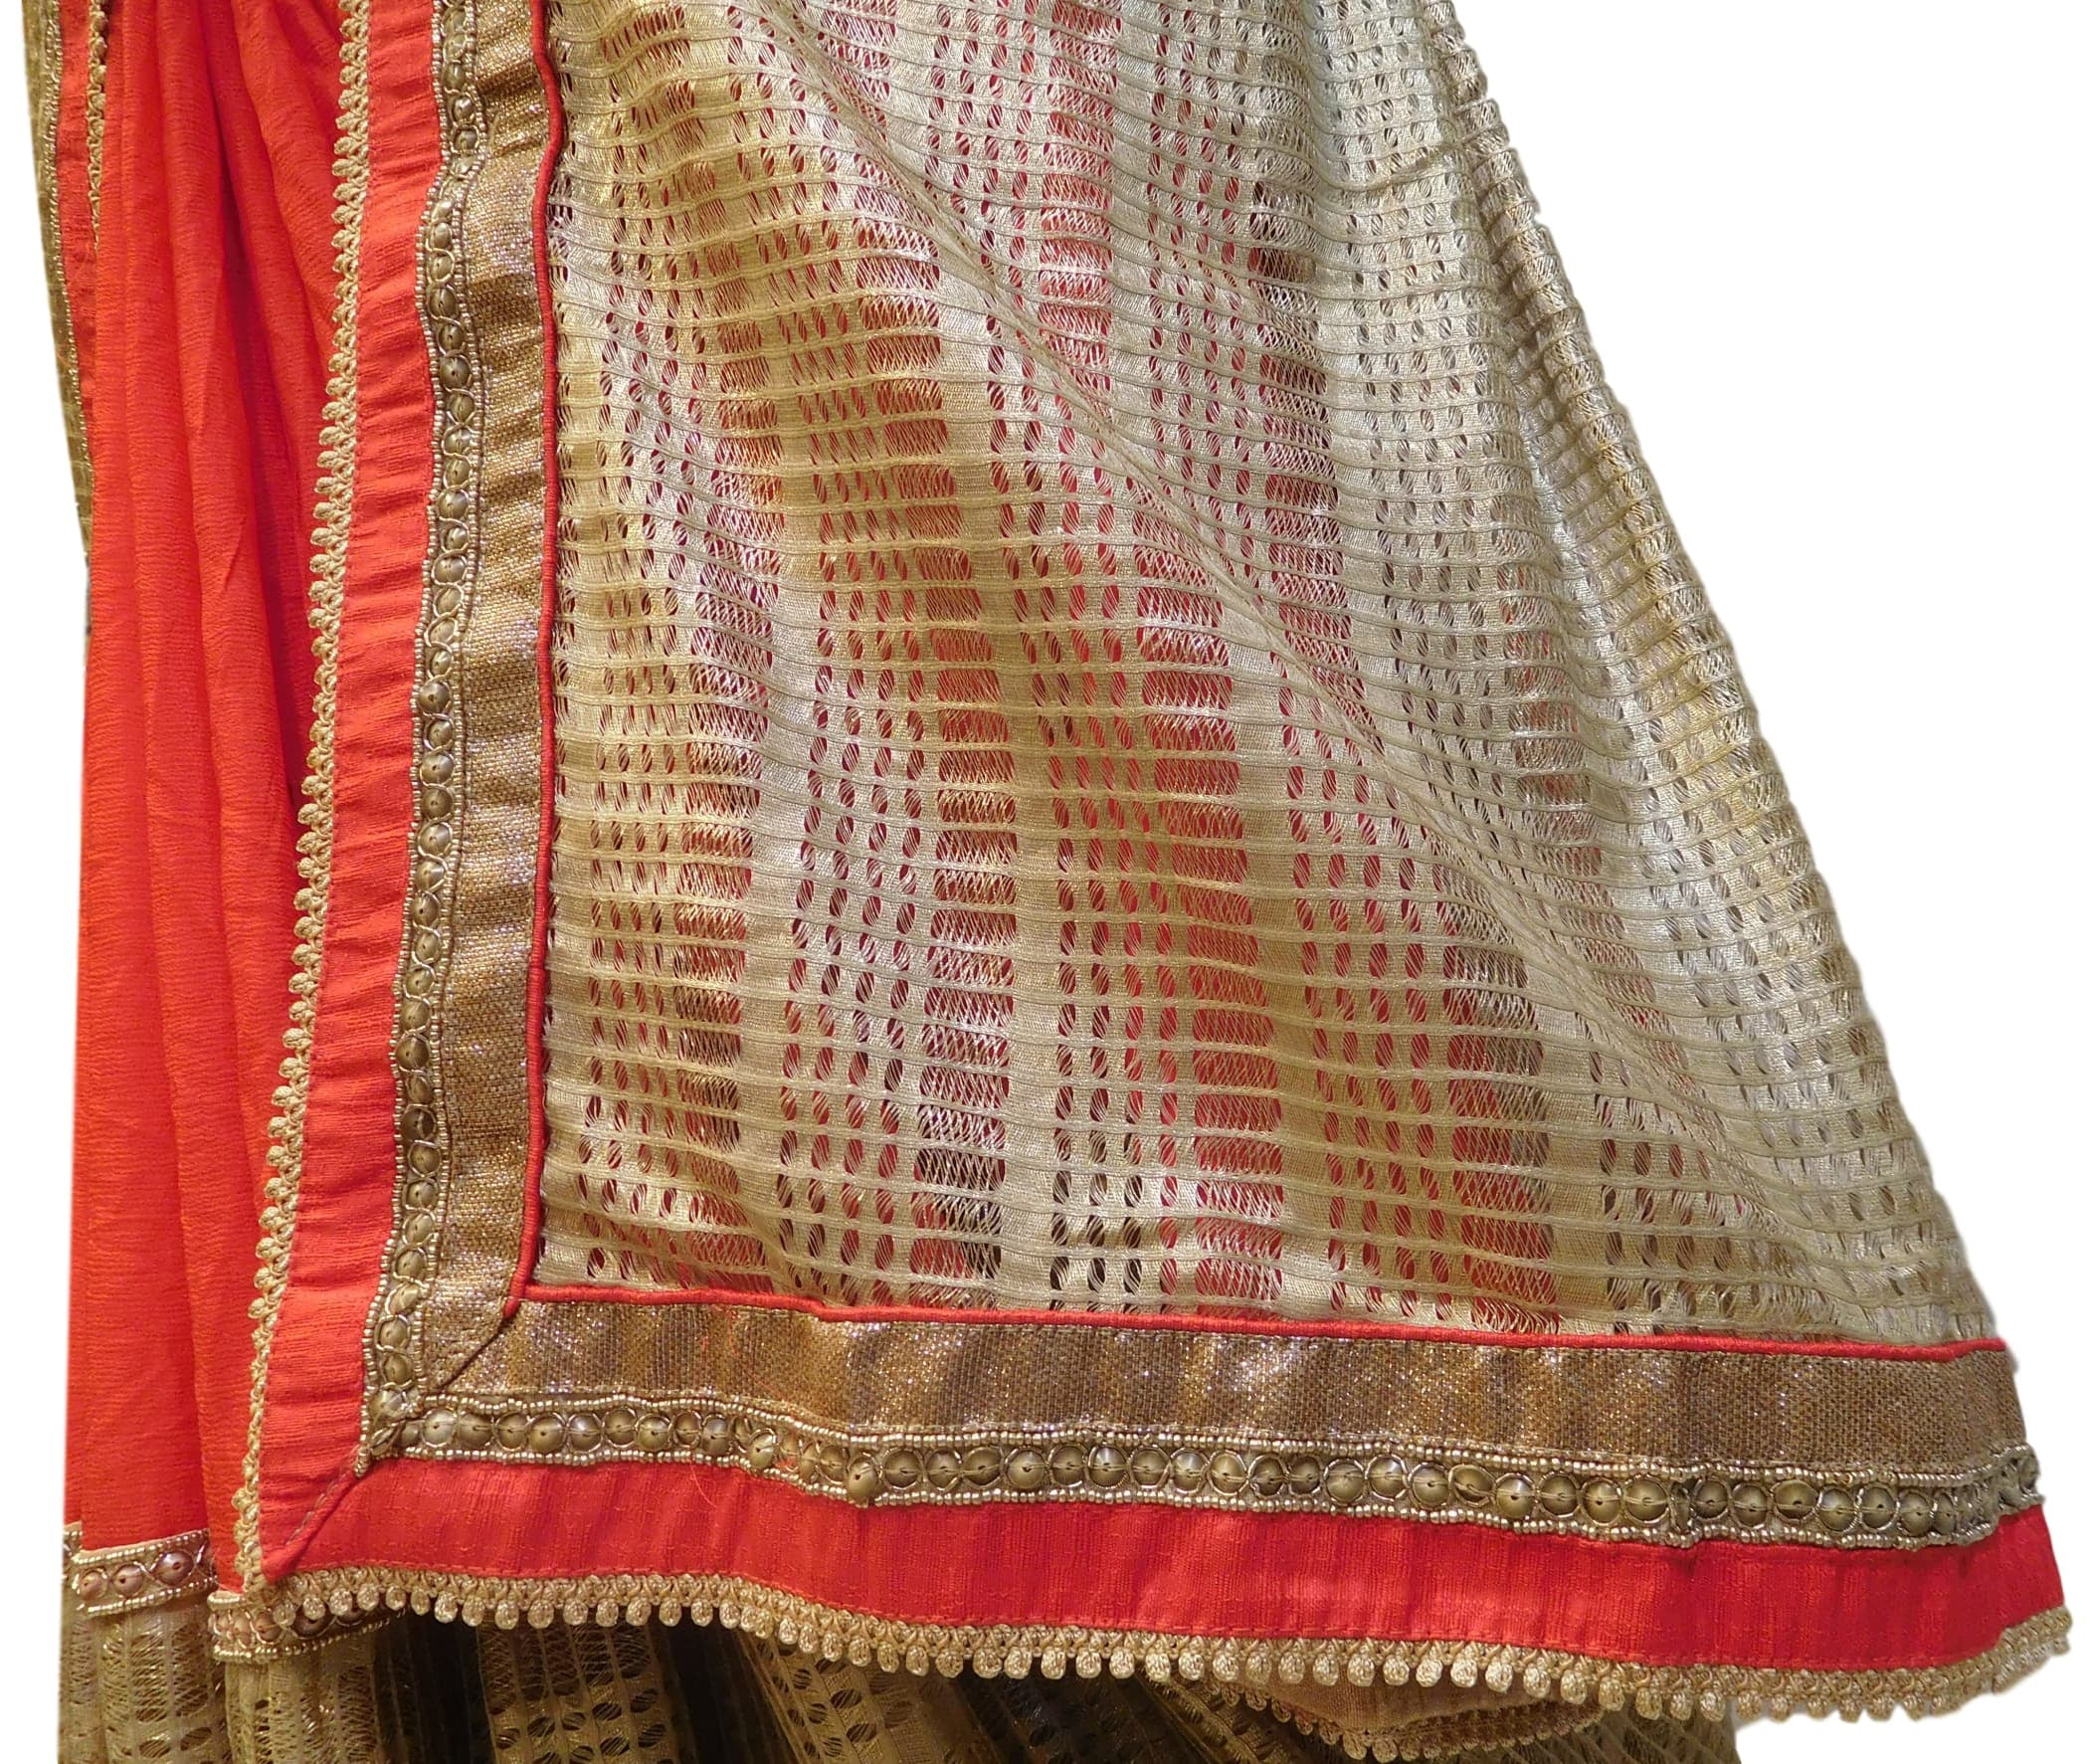 Red & Golden Boutique Style Georgette (Viscos) Hand Embroidery Bullion Sequence Thread Beads Work Saree Sari With Designer Stitched Blouse